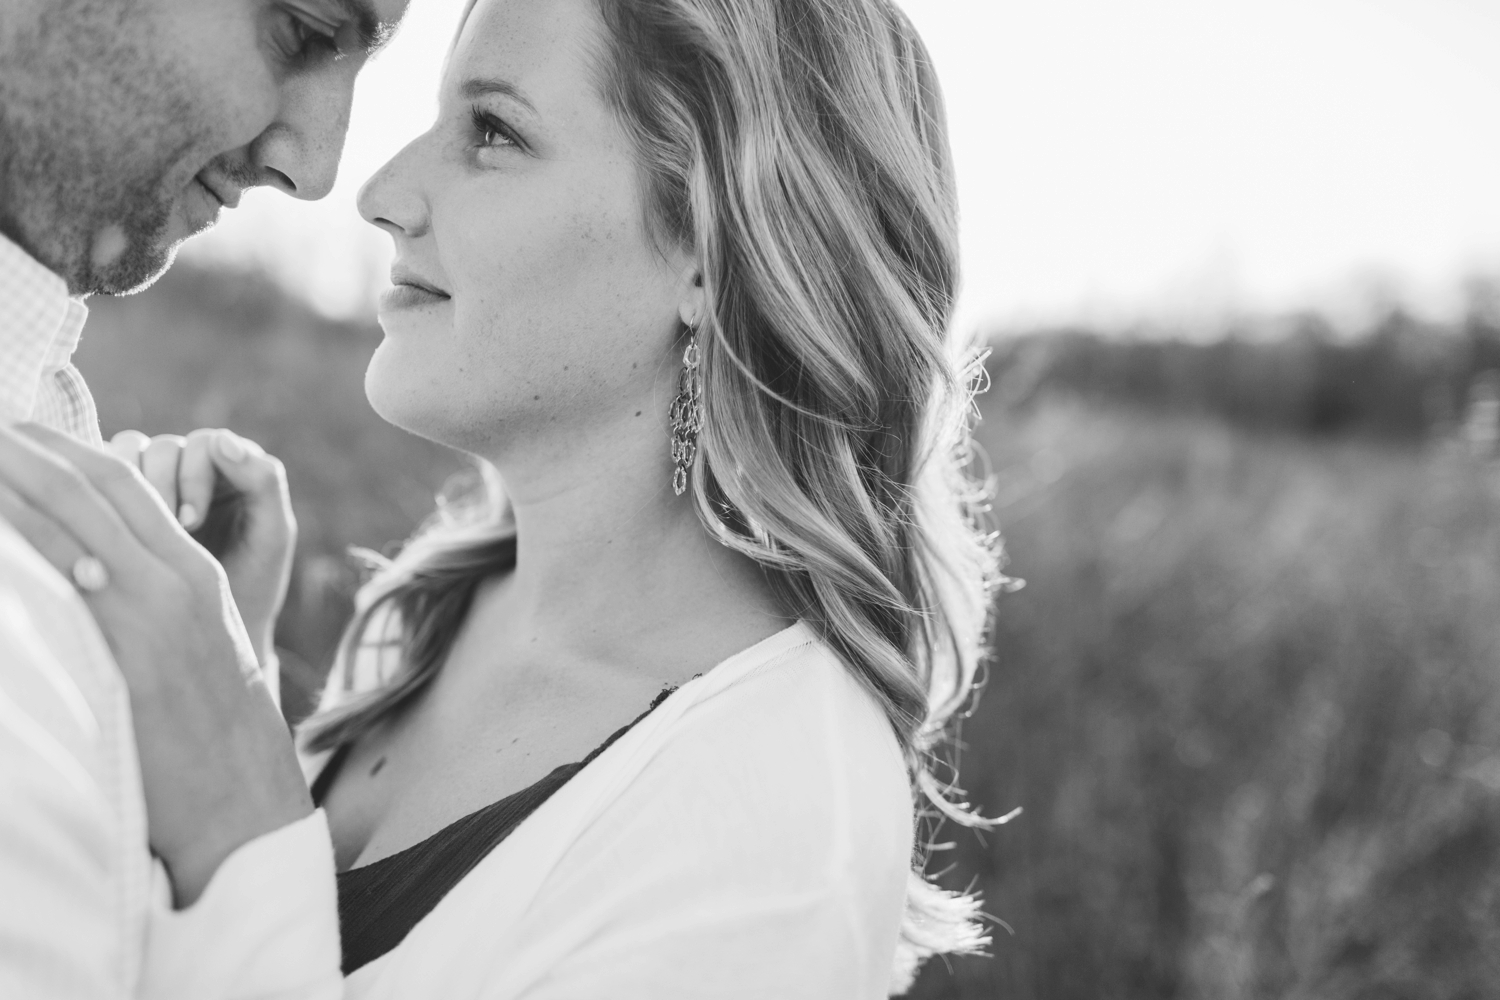 indianapolis_wedding_photographer_golden_hour_engagement_chloe_luka_photography_6129.jpg